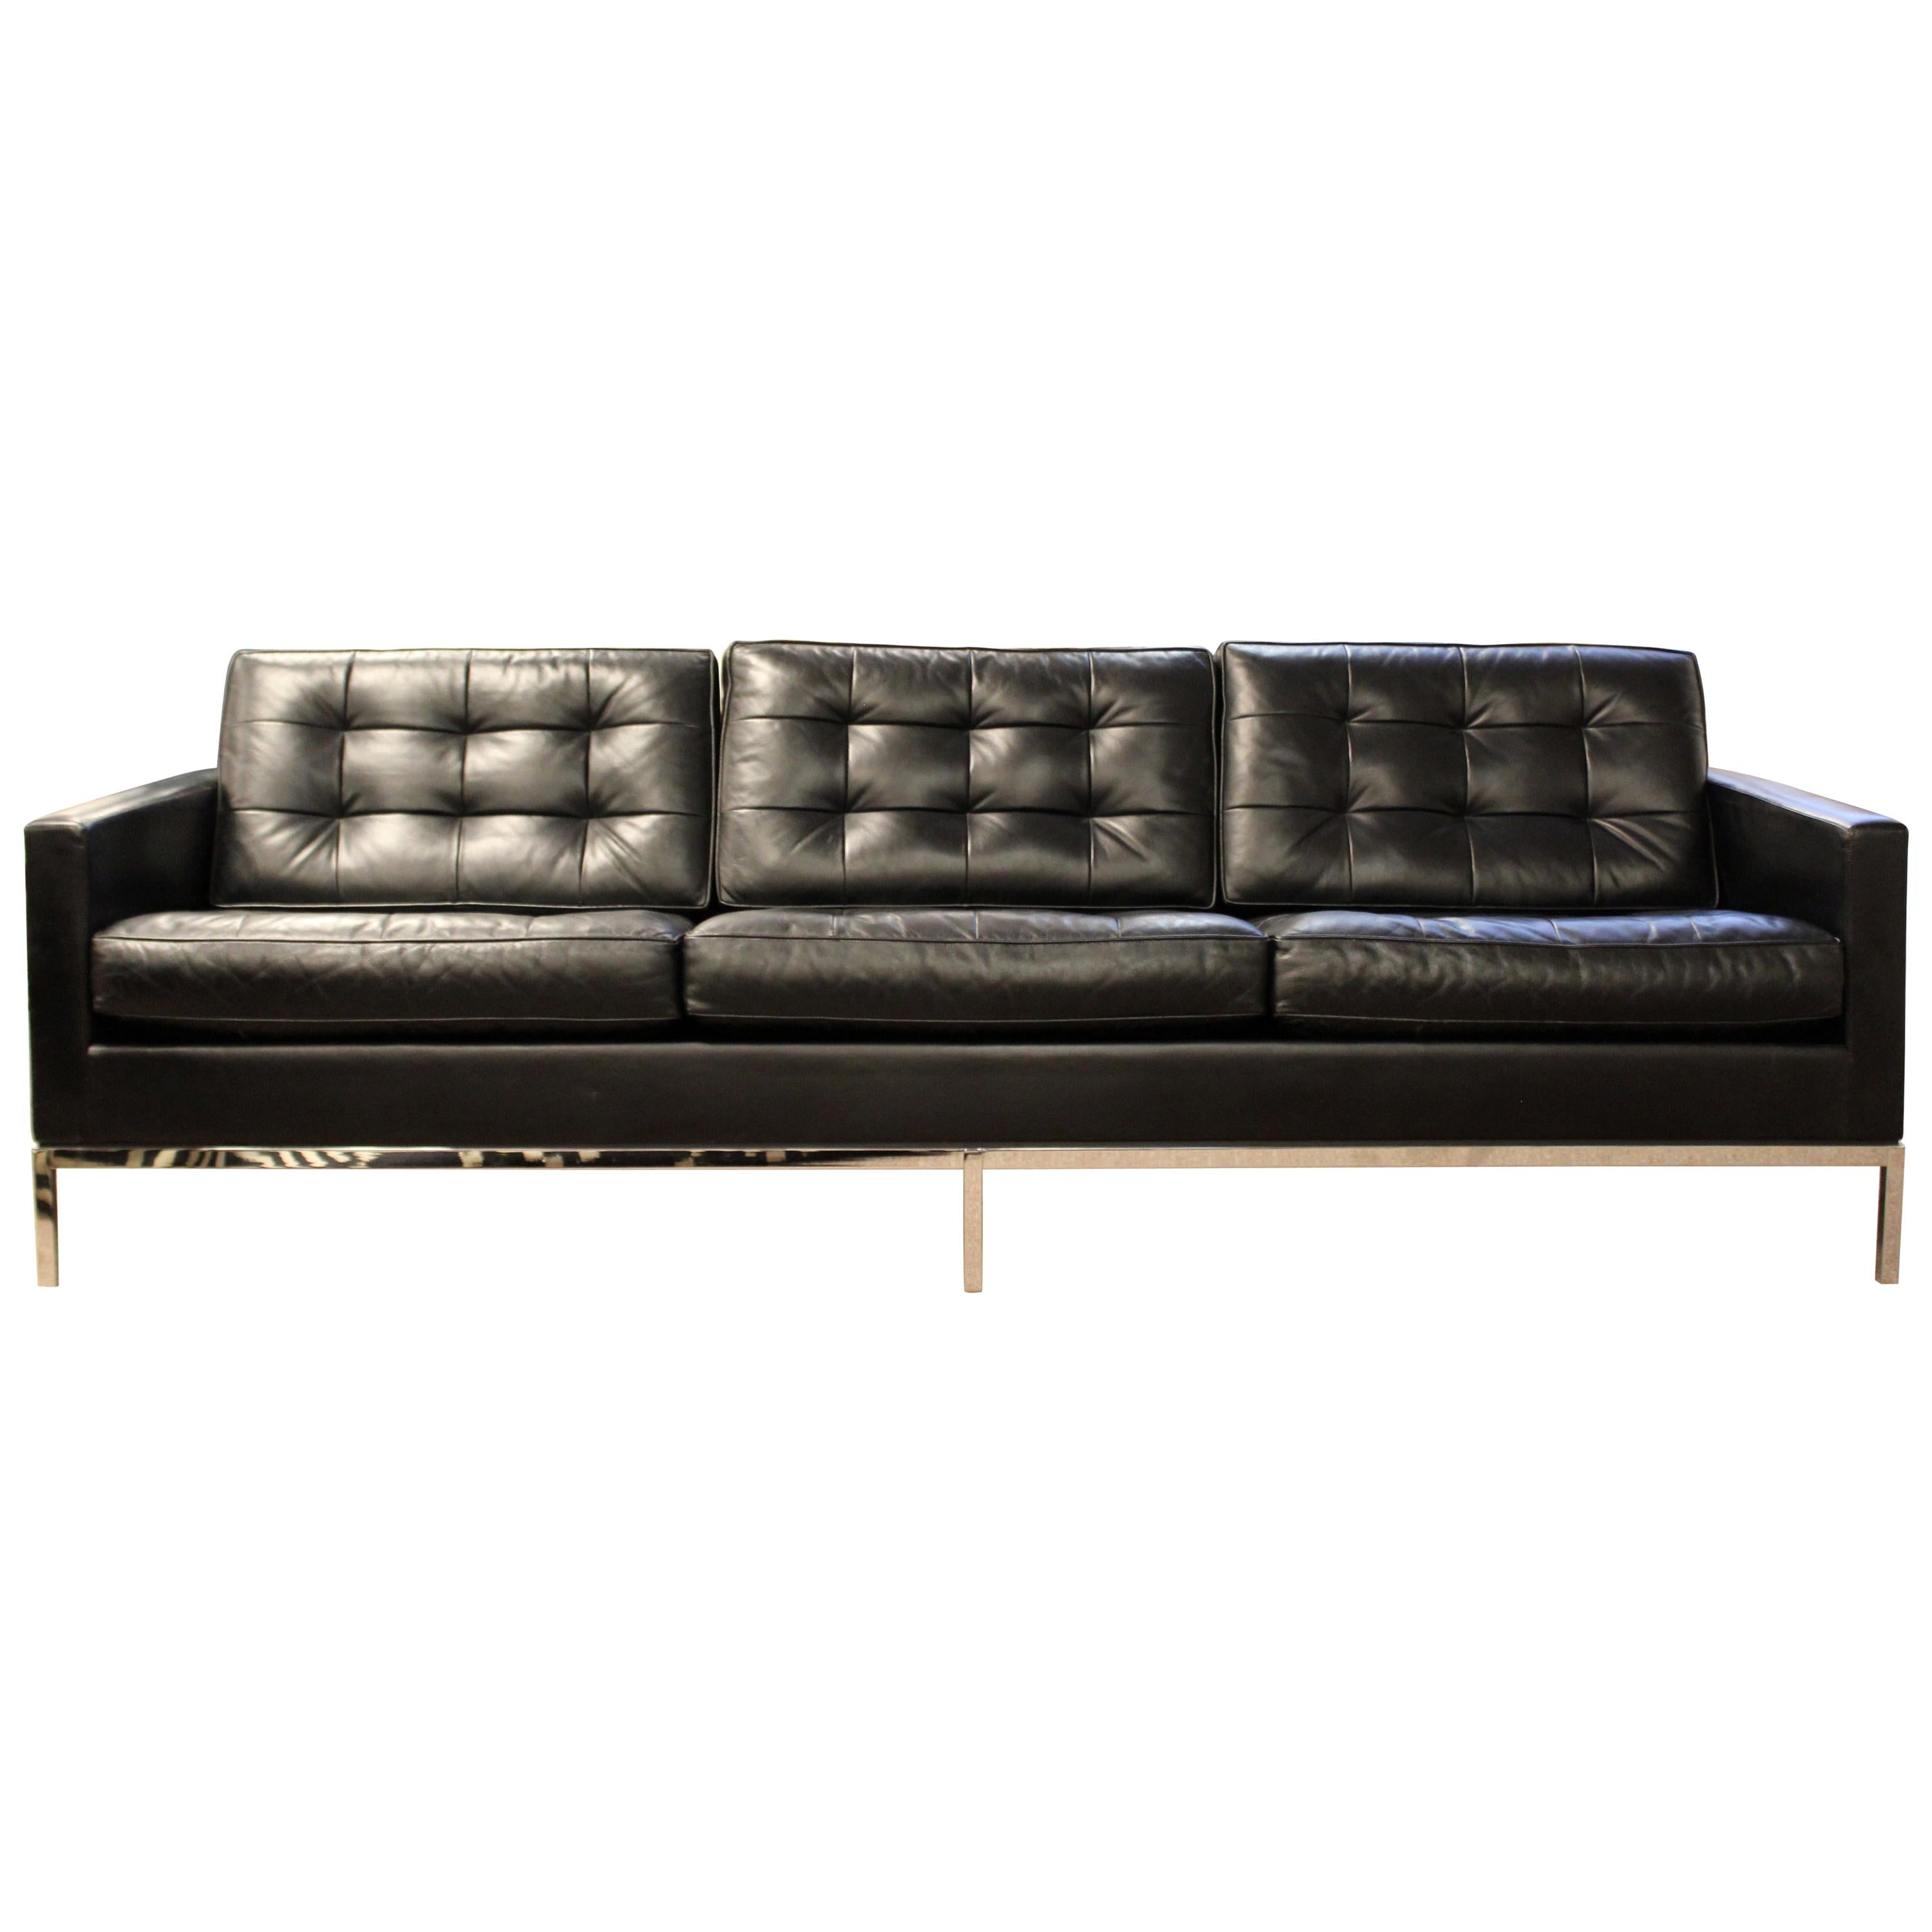 Mid-Century Modern Florence Knoll Chrome Sofa Black Tufted Leather ...